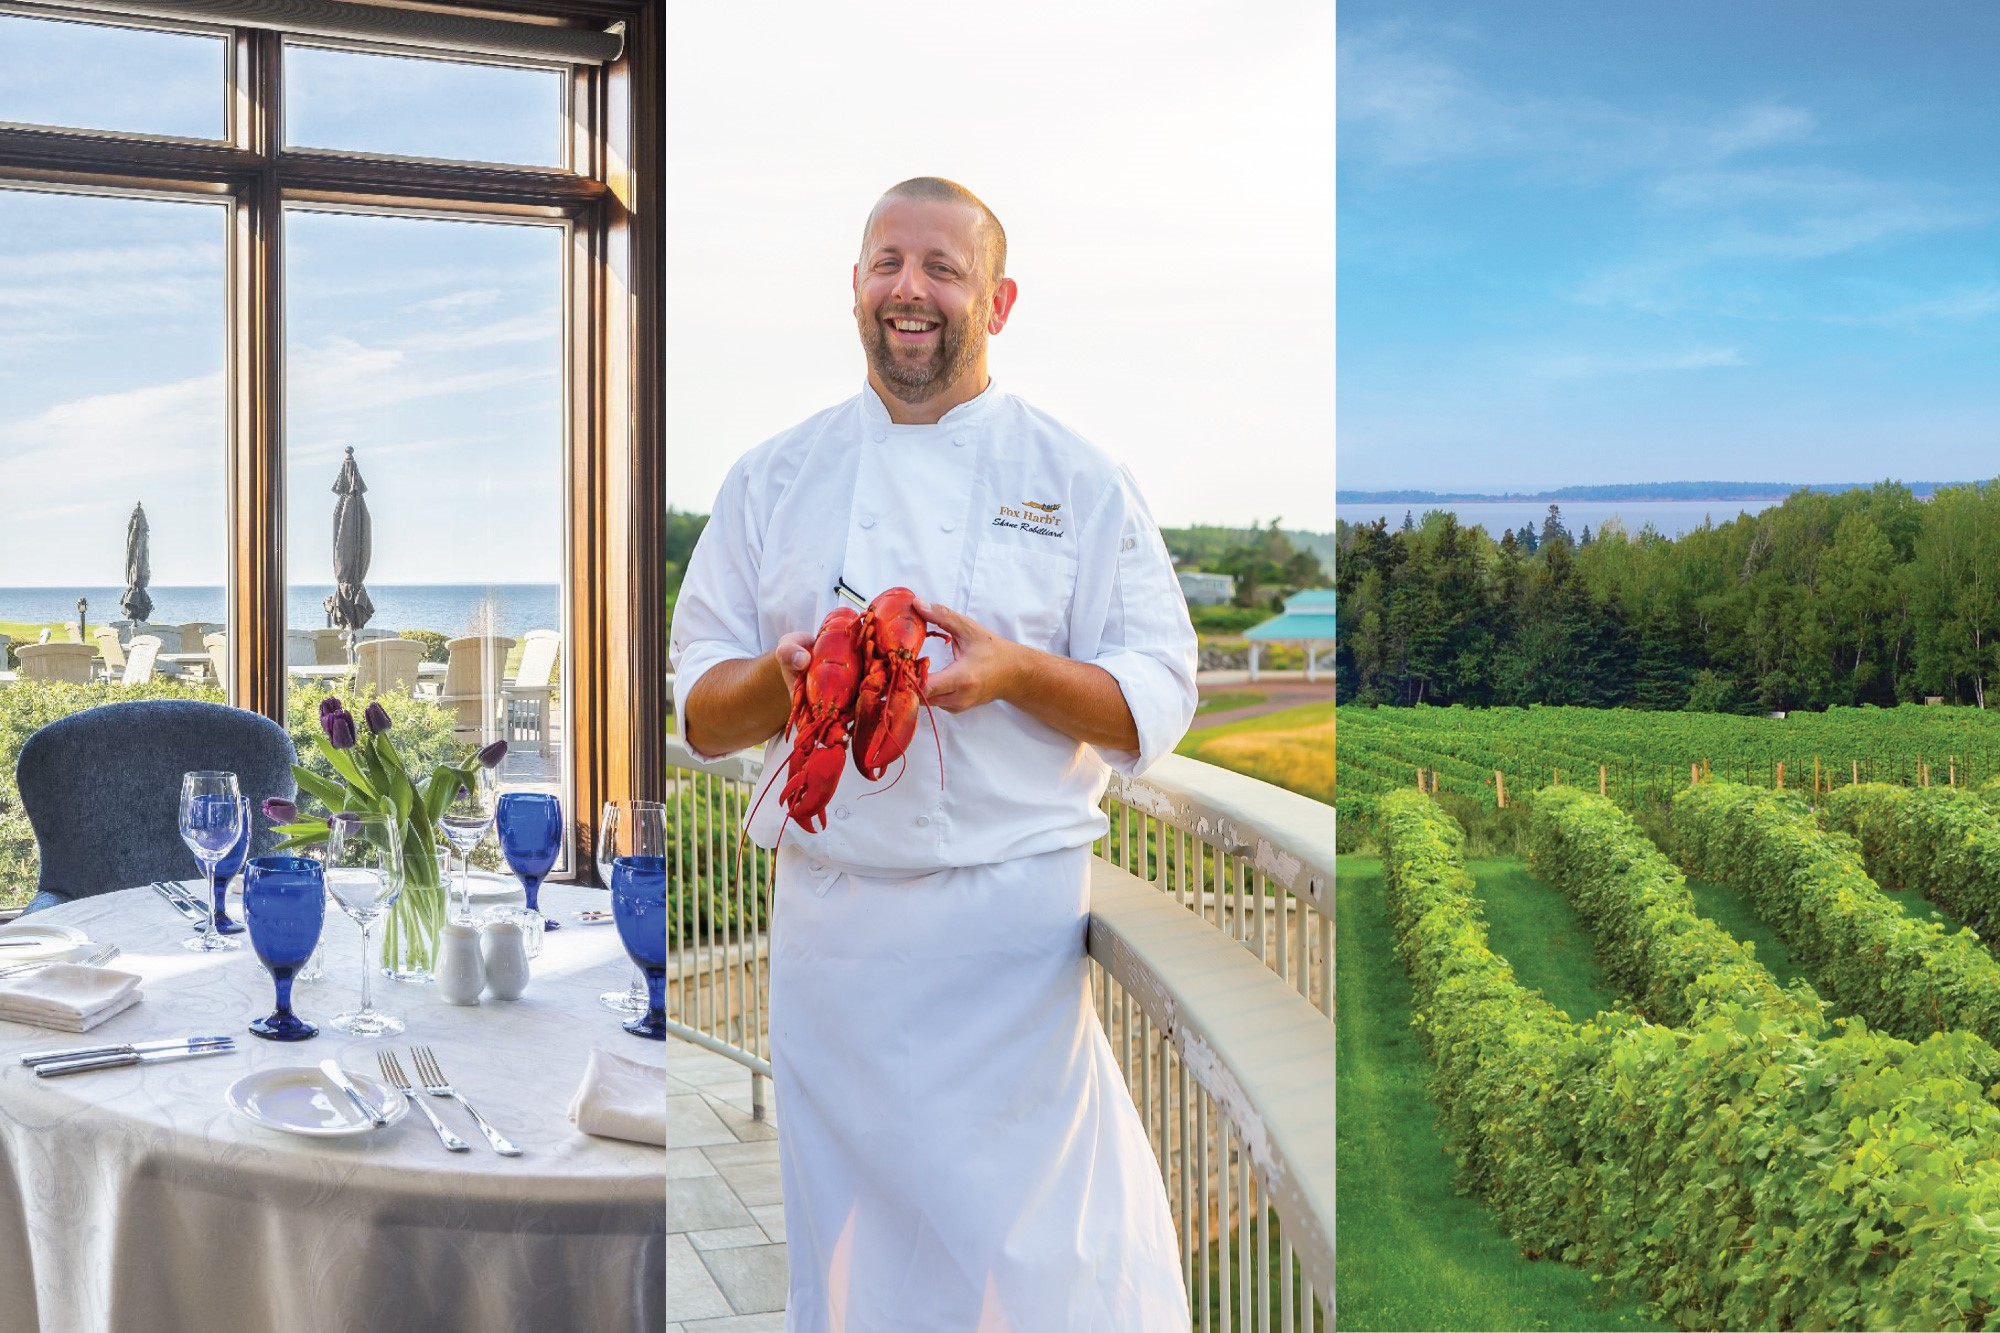 Fox-Harb'r-Resort-Culinary-Coast-Gourmet-Getaway-Nova-Scotia